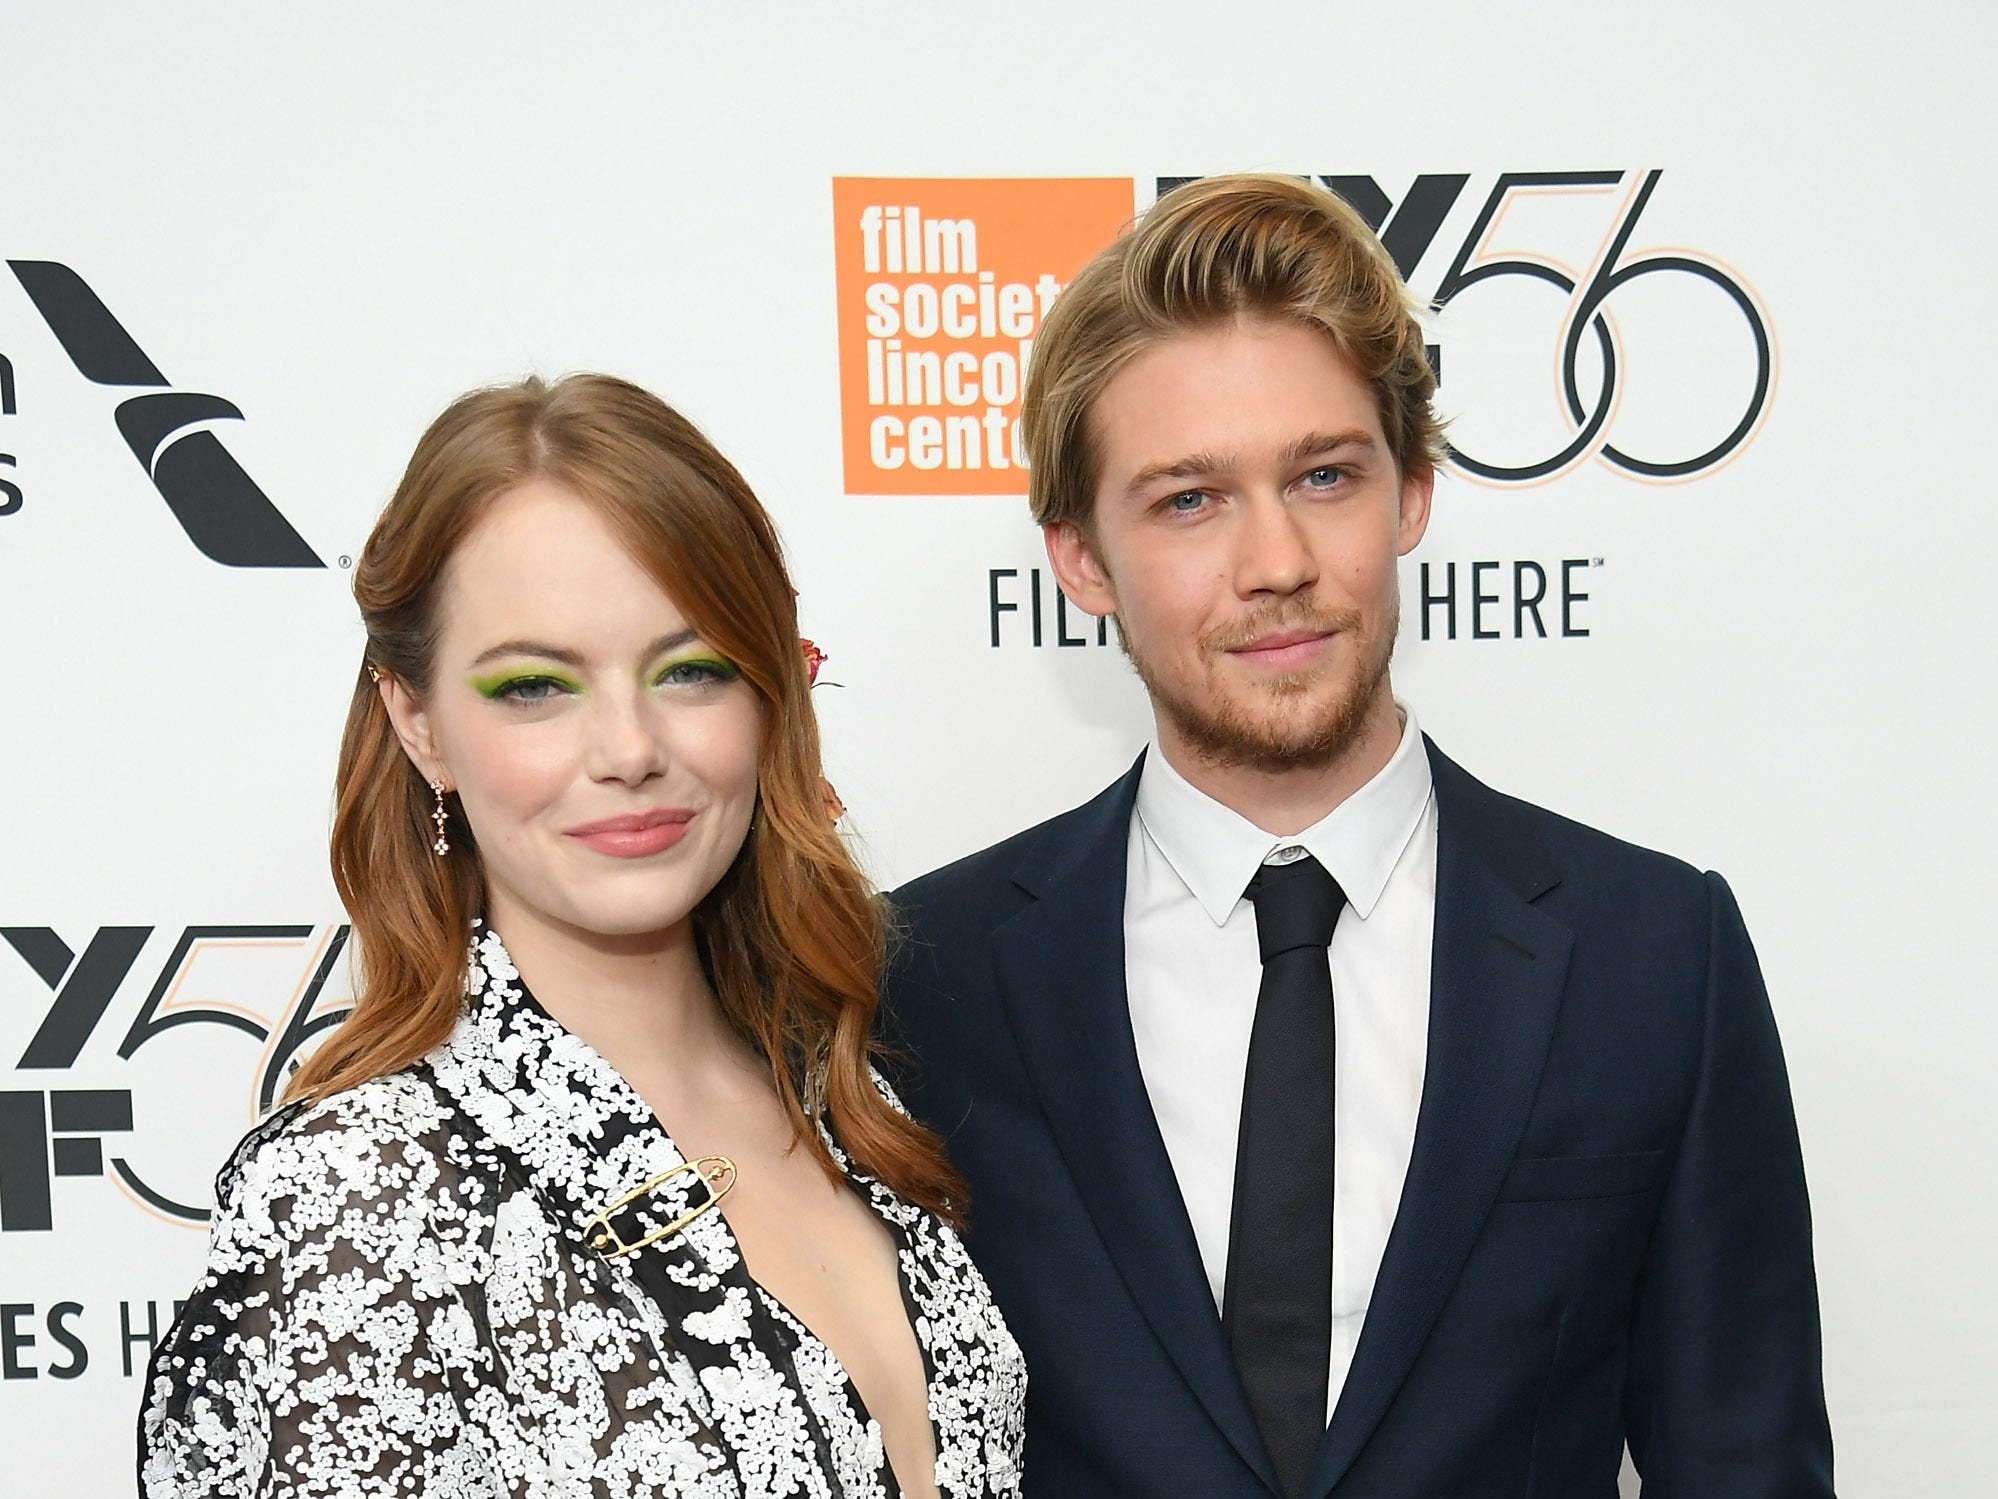 """September 28: Emma Stone and Joe Alwyn pose together at the opening night premiere of """"The Favourite"""" during the New York Film Festival."""